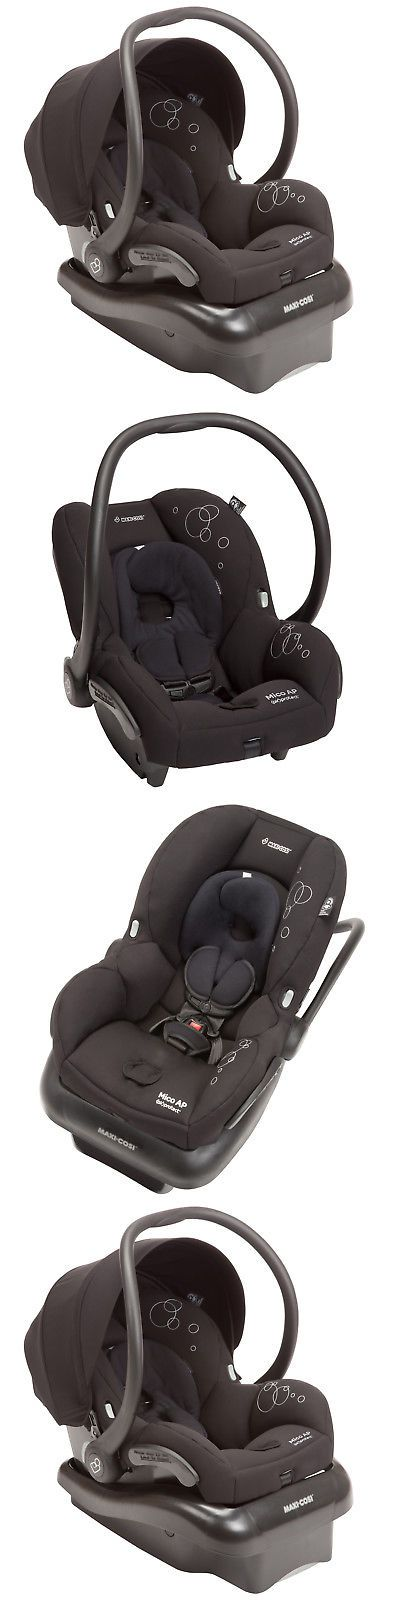 Car Safety Seats 66692: Maxi-Cosi Mico Ap Infant Car Seat -> BUY IT ...